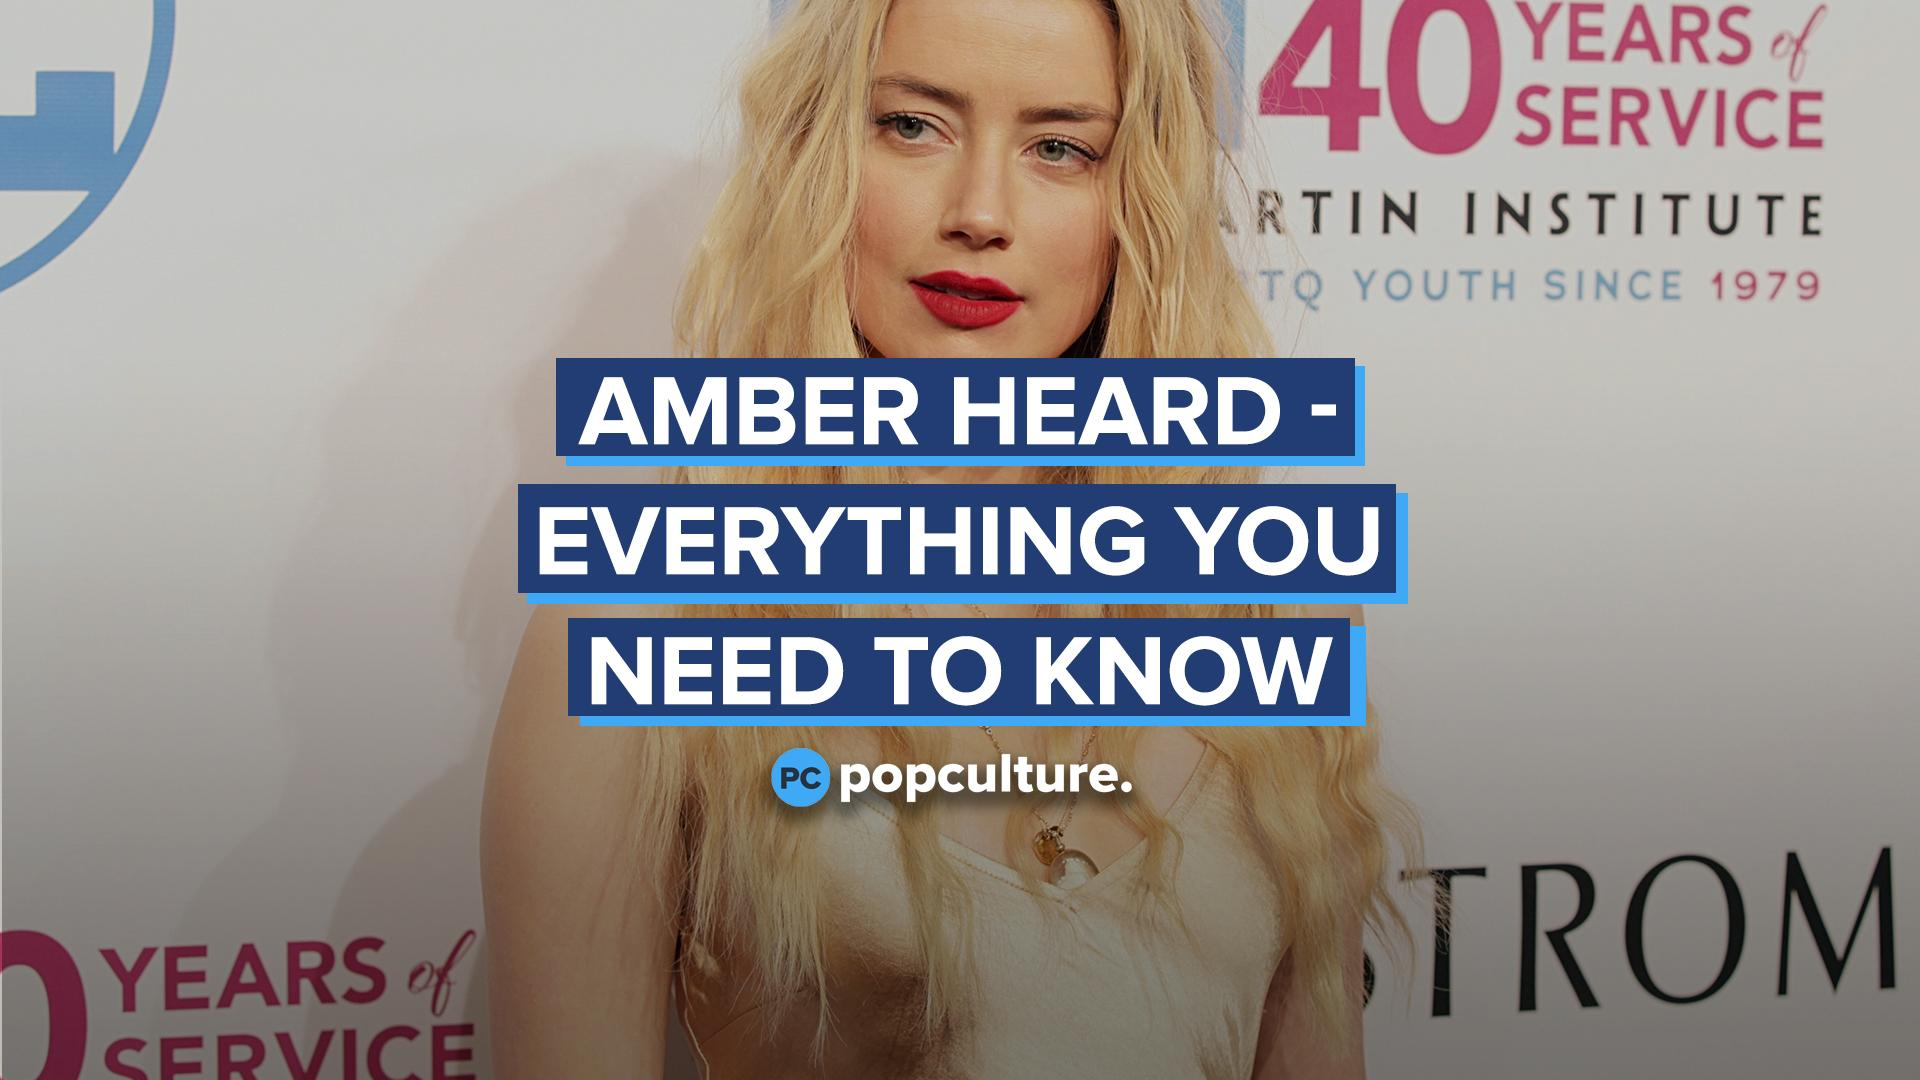 Amber Heard - Everything You Need to Know screen capture